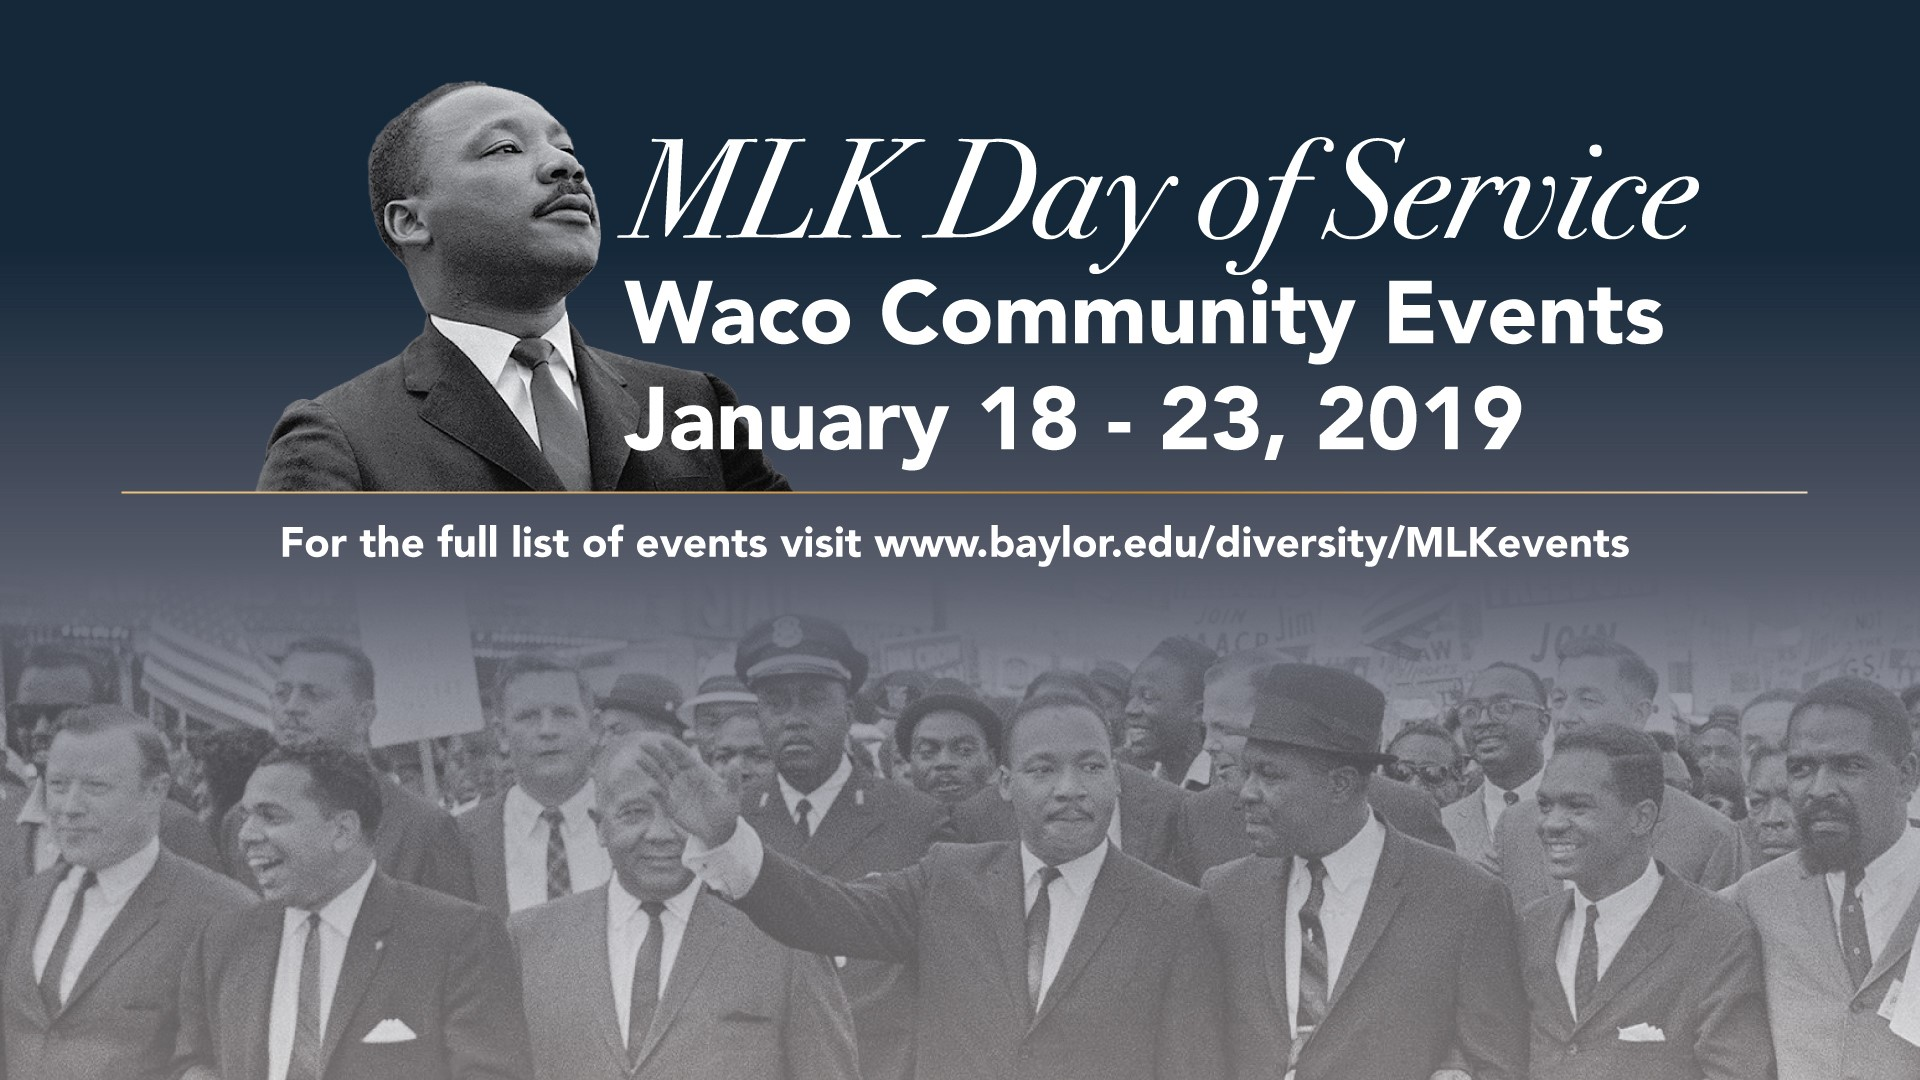 Waco Baylor Community Will Observe Dr Martin Luther King Jr Day